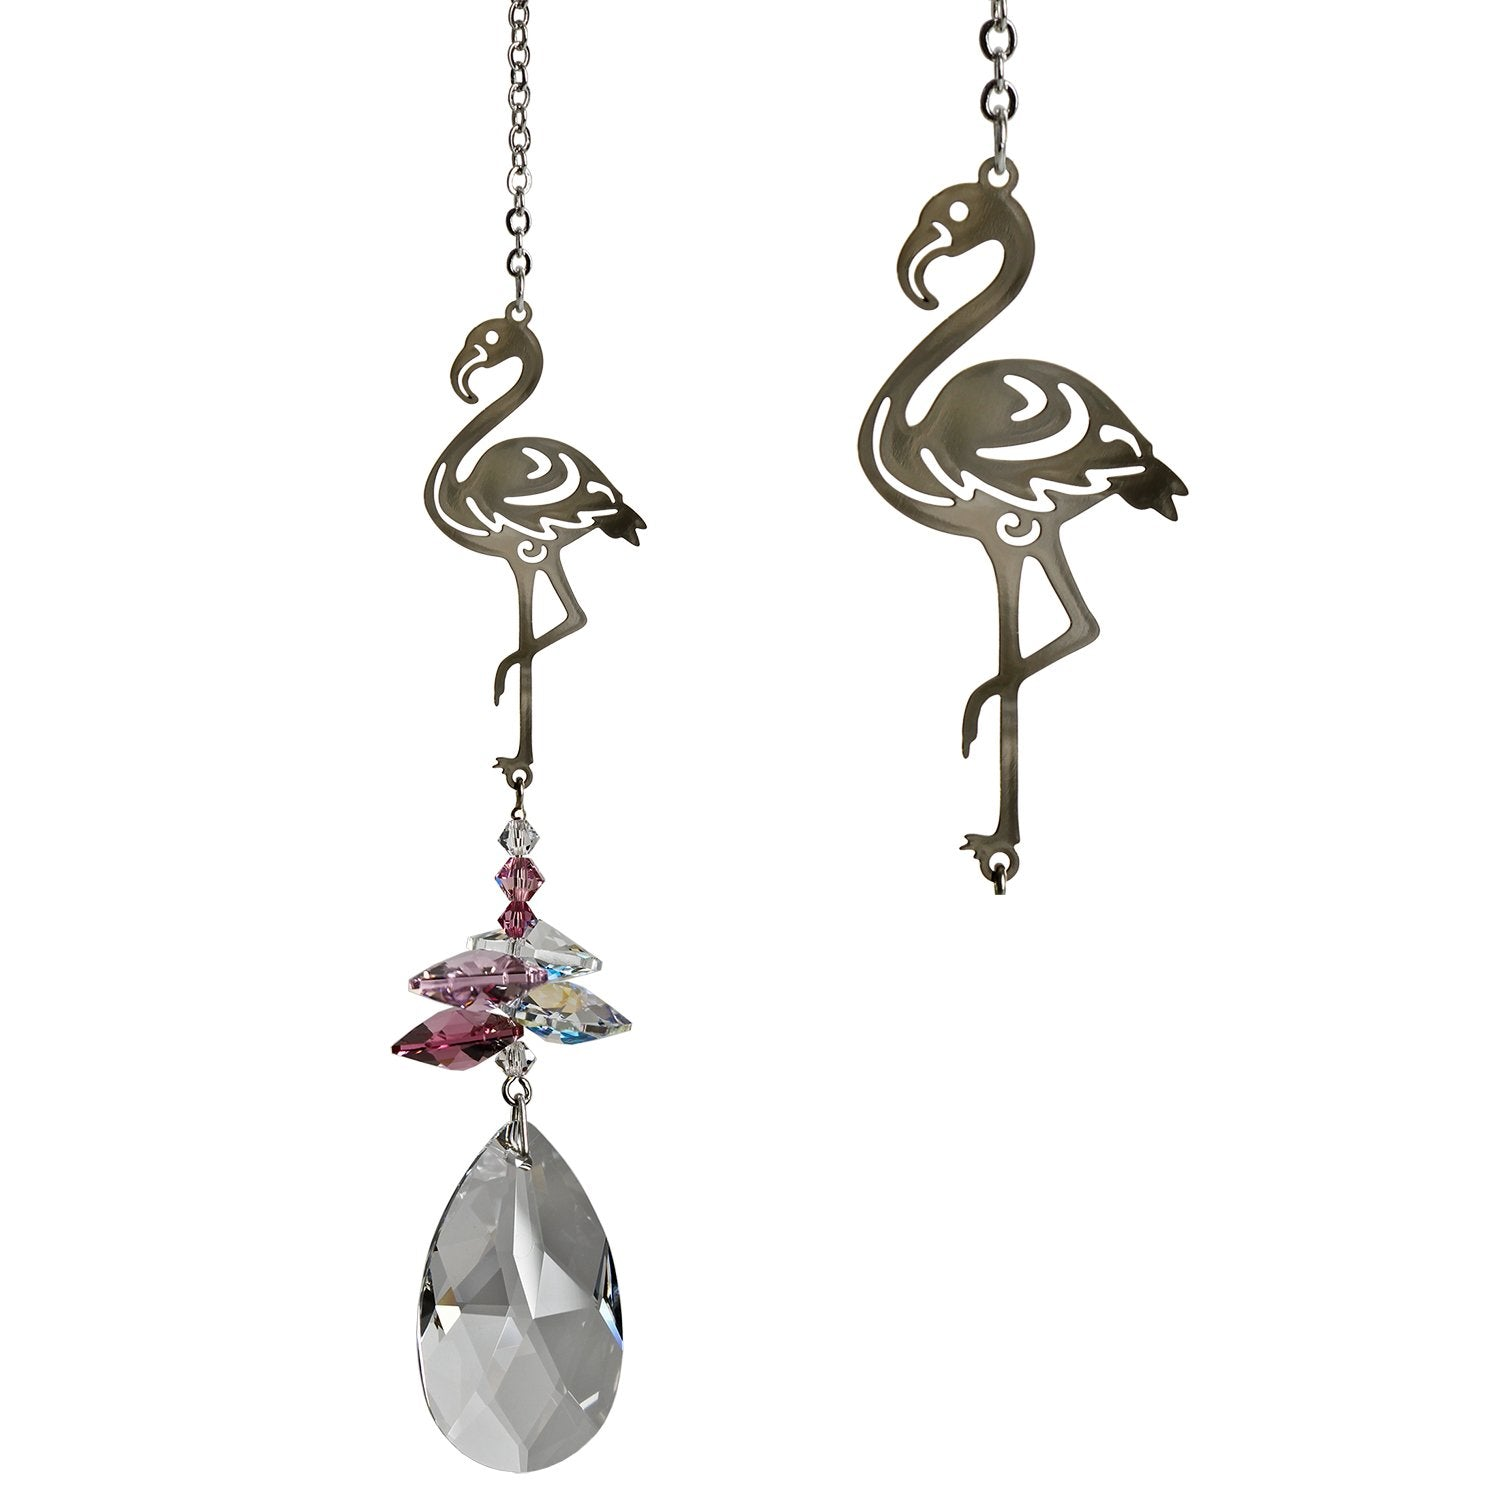 Crystal Fantasy Suncatcher - Pink Flamingo main image